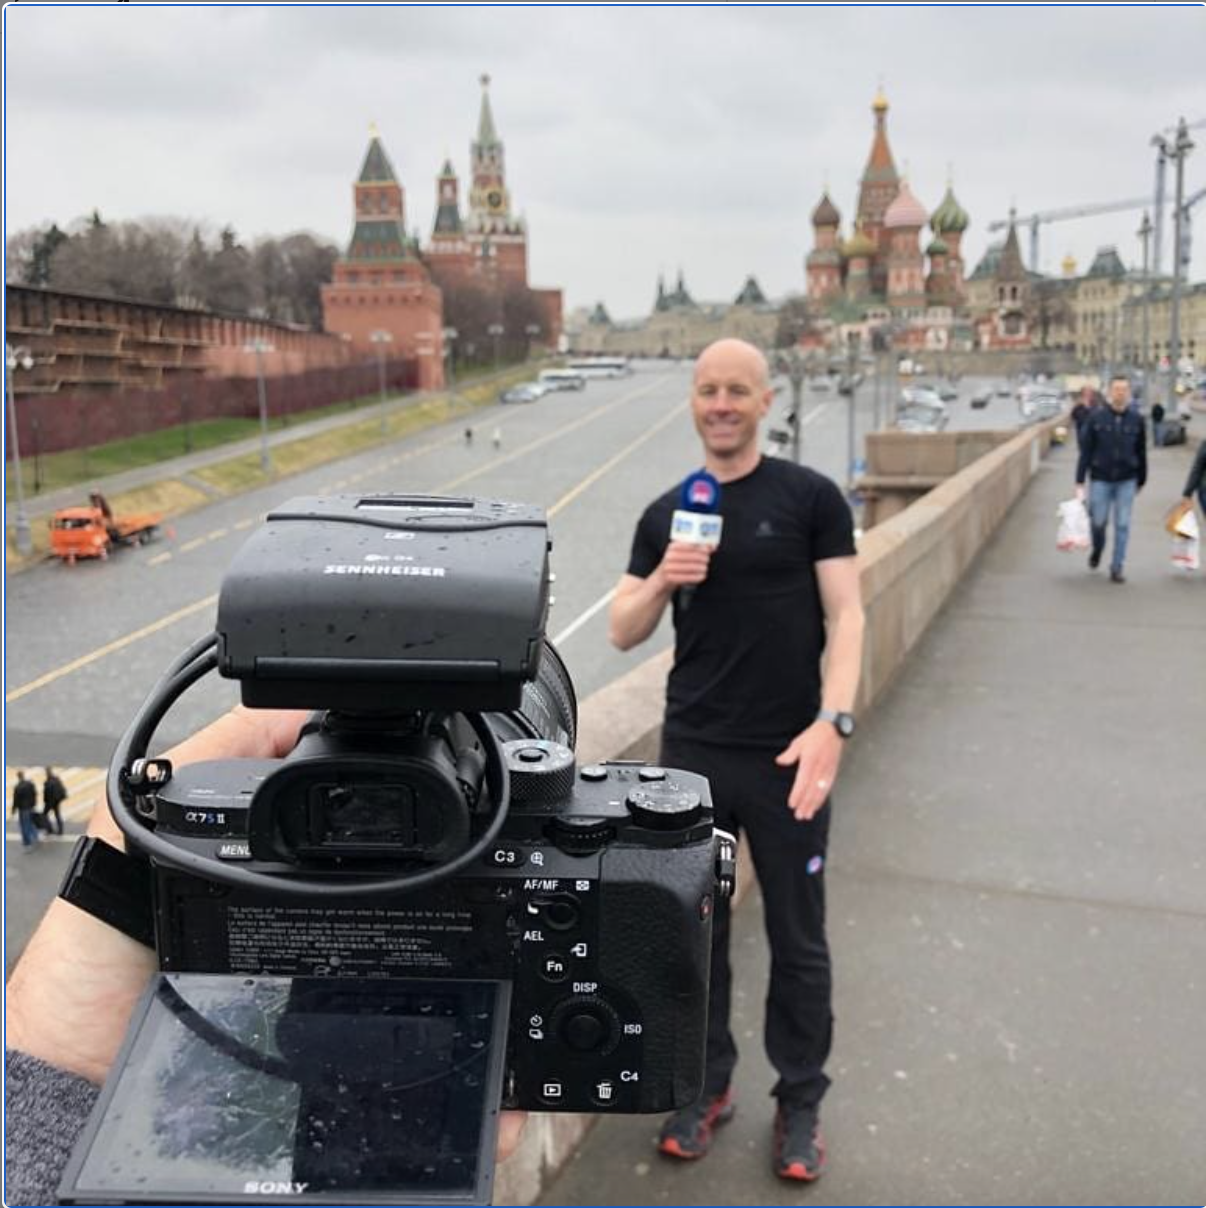 Filming/shivering in Red Square, Moscow.